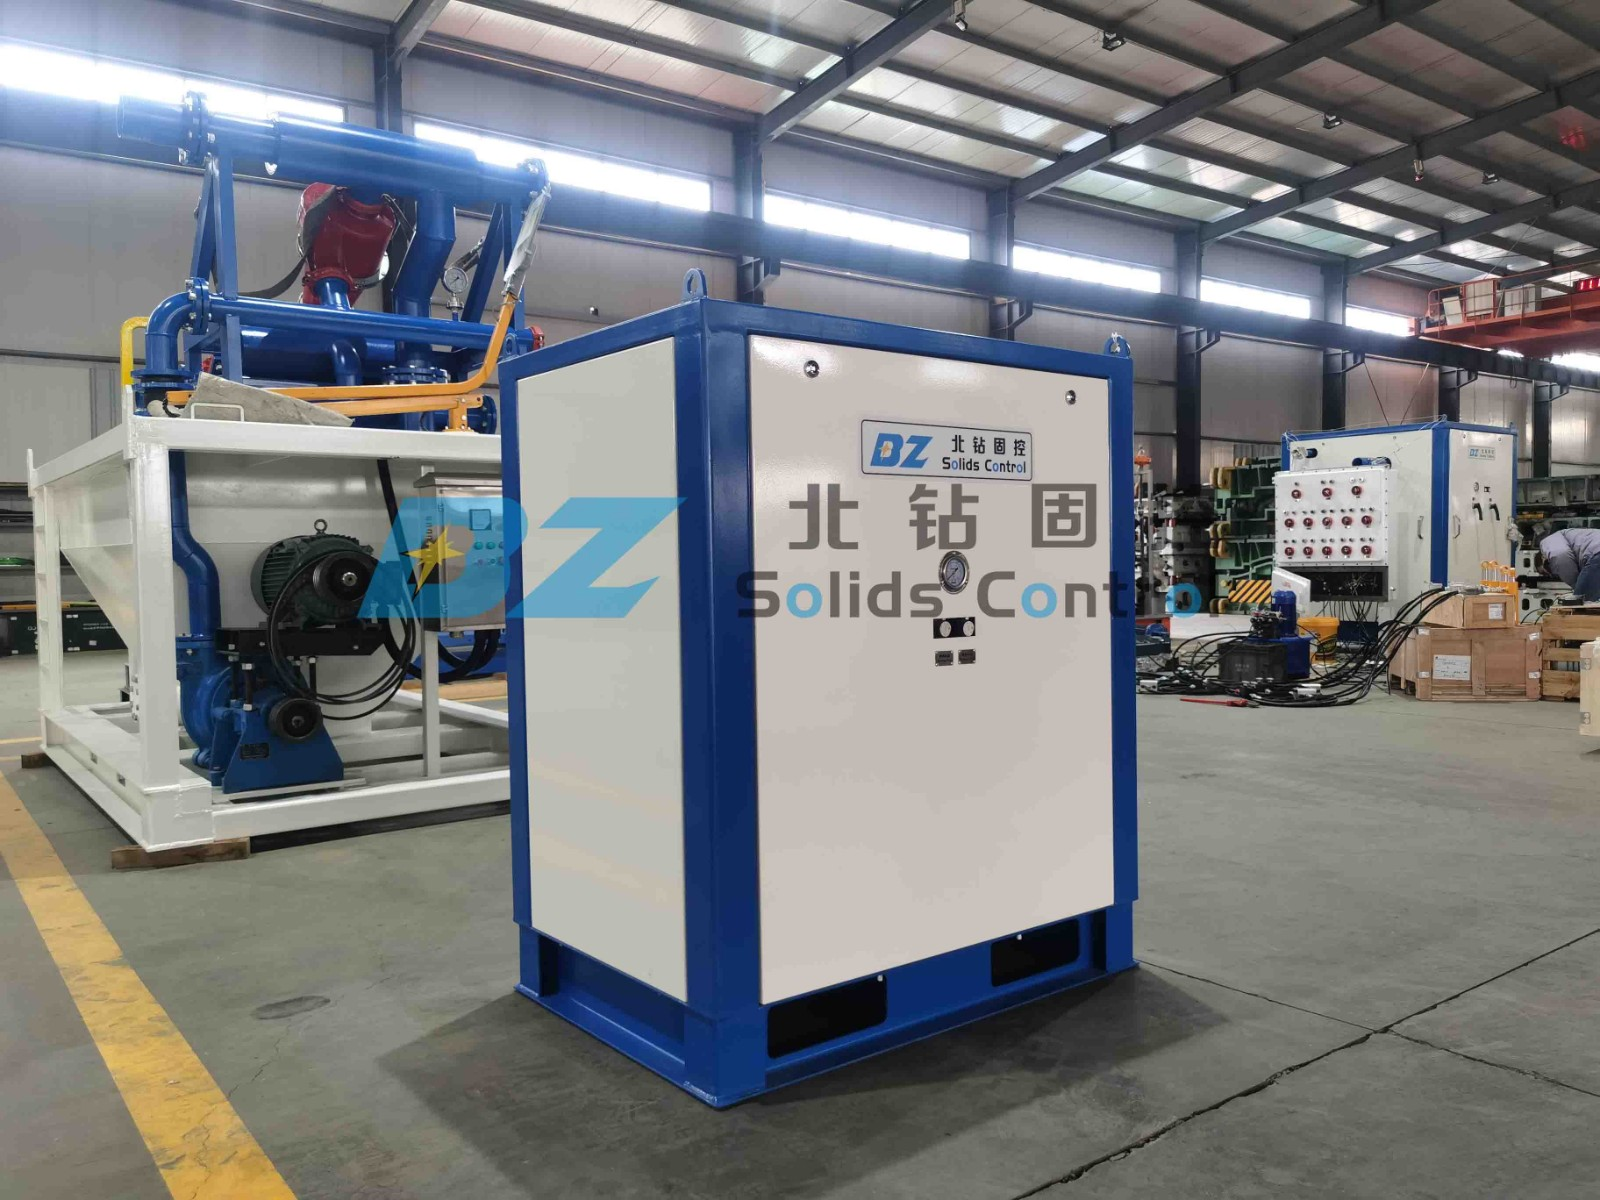 BZ vacuum suction device was sent to the drilling site